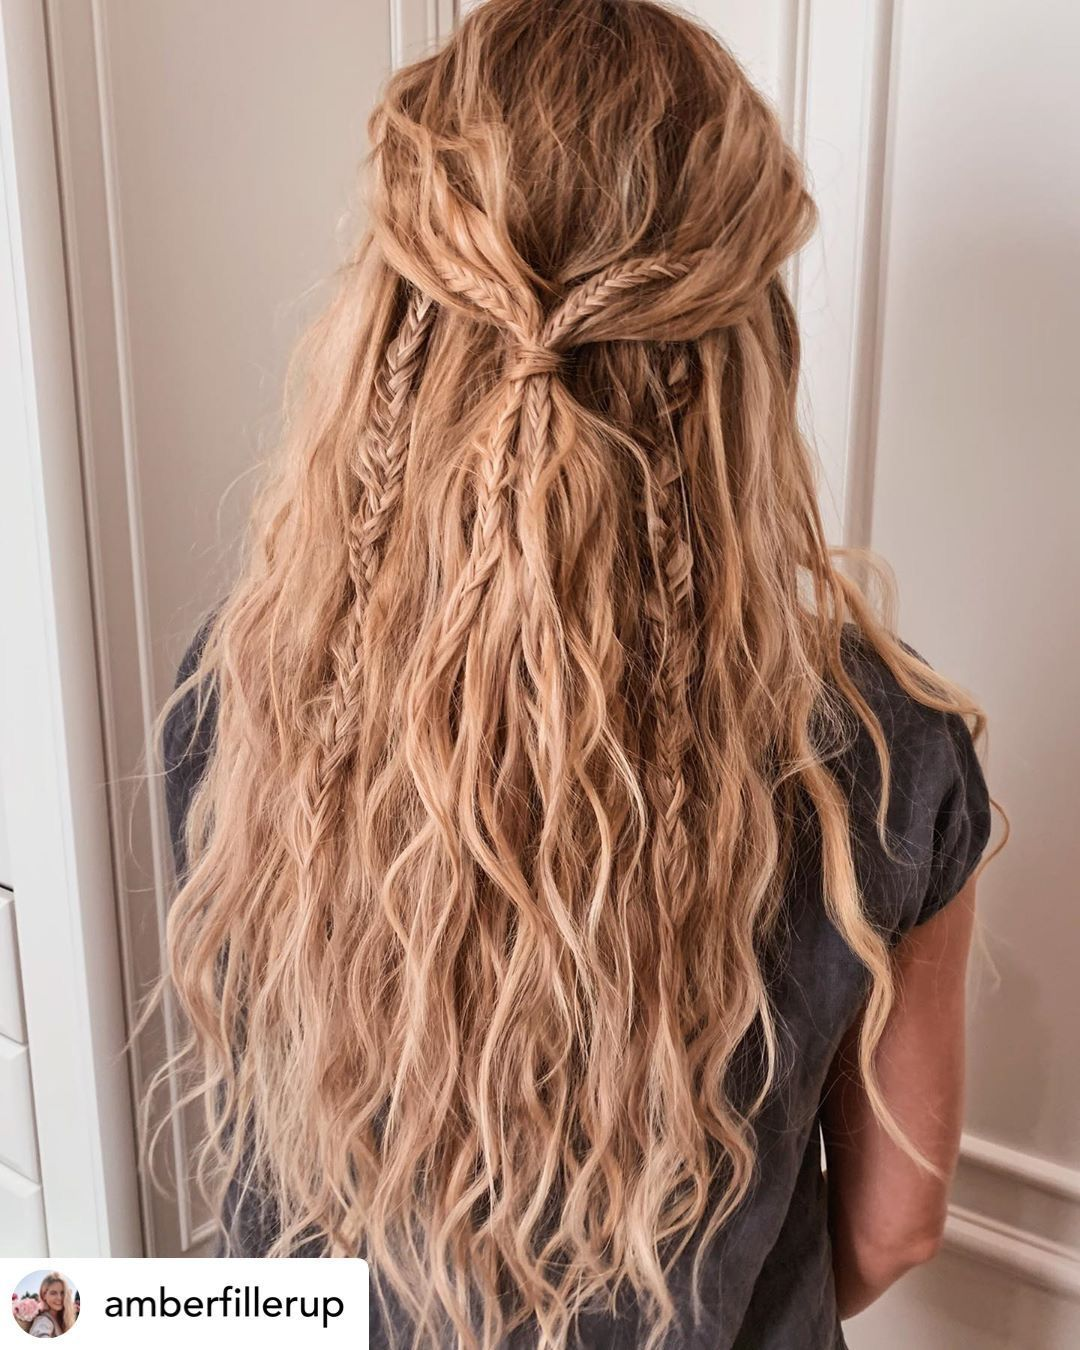 15 ridiculously cute summer hairstyles (step-by-step instructions included)